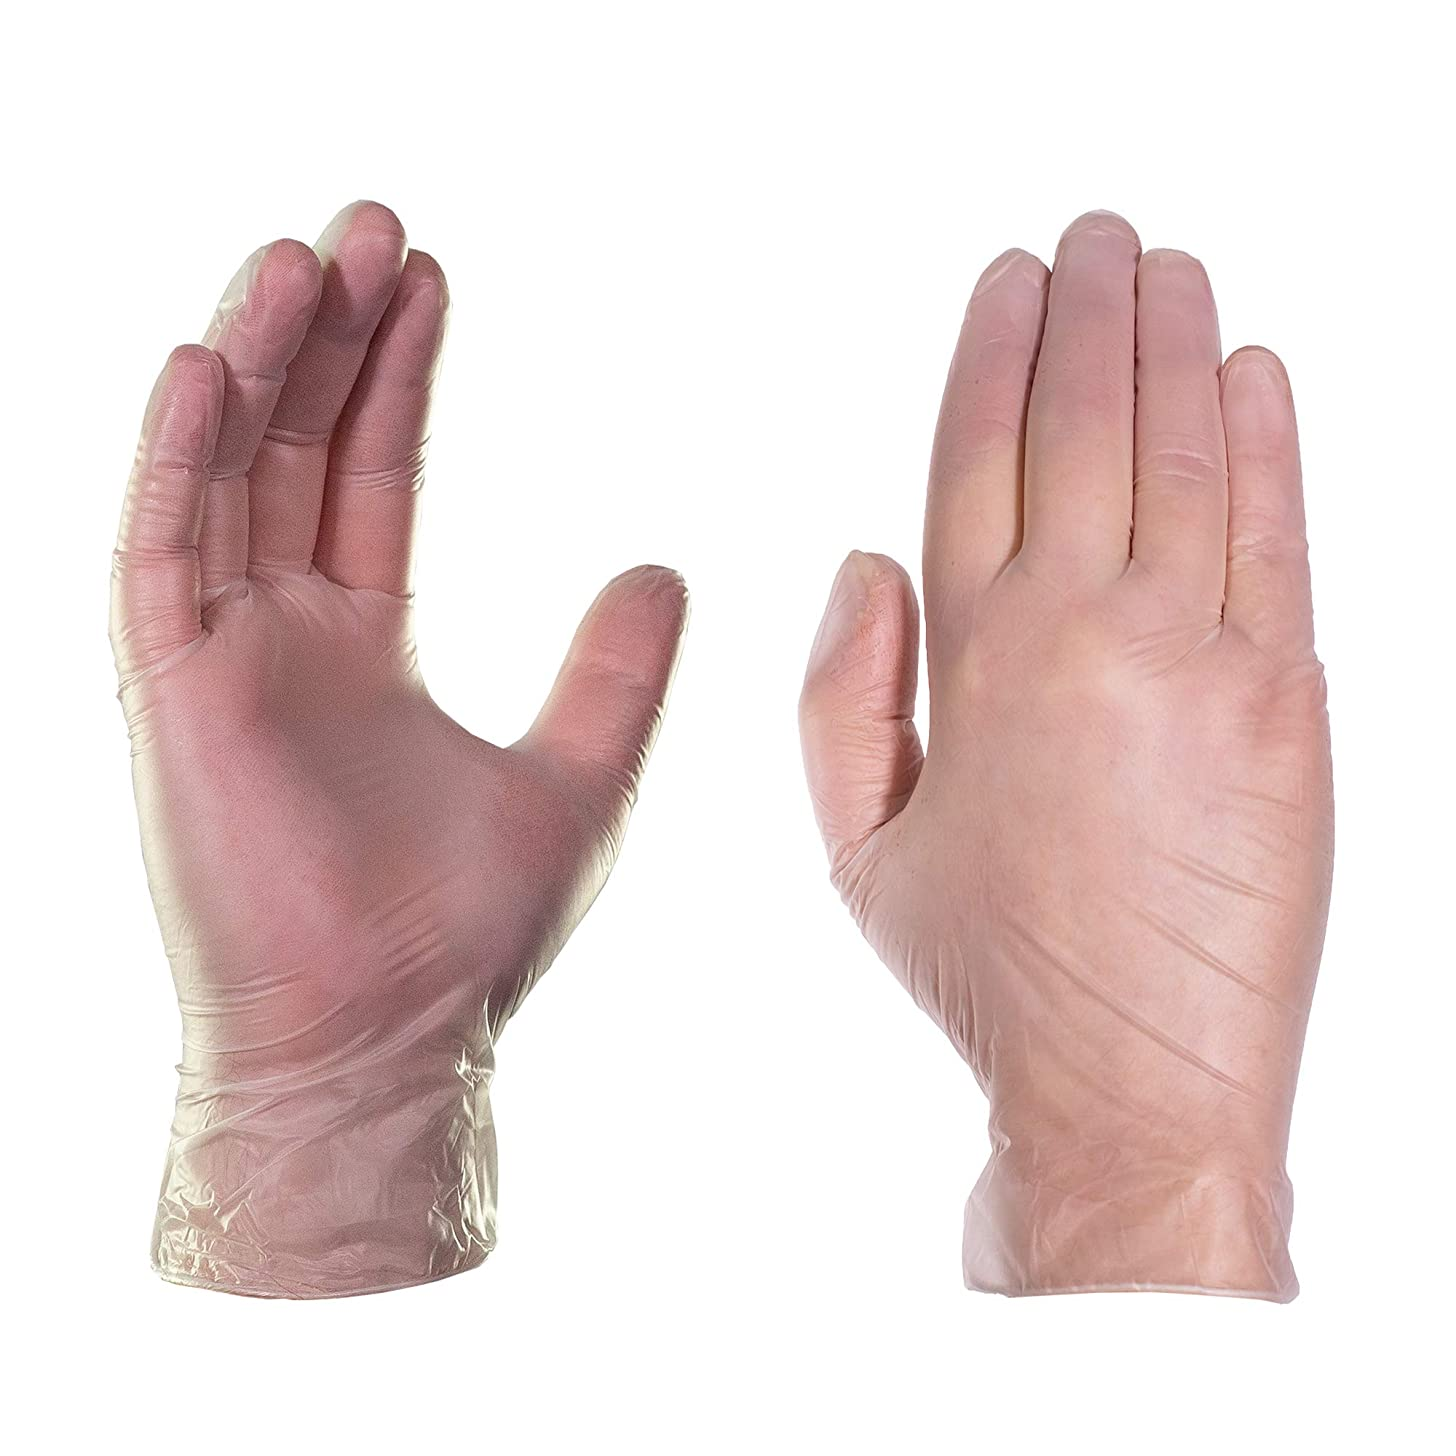 AMMEX Clear Vinyl 4 Mil Disposable Gloves - Powder-Free, Non-Sterile, Food Safe, Latex Free, Small, Box of 100